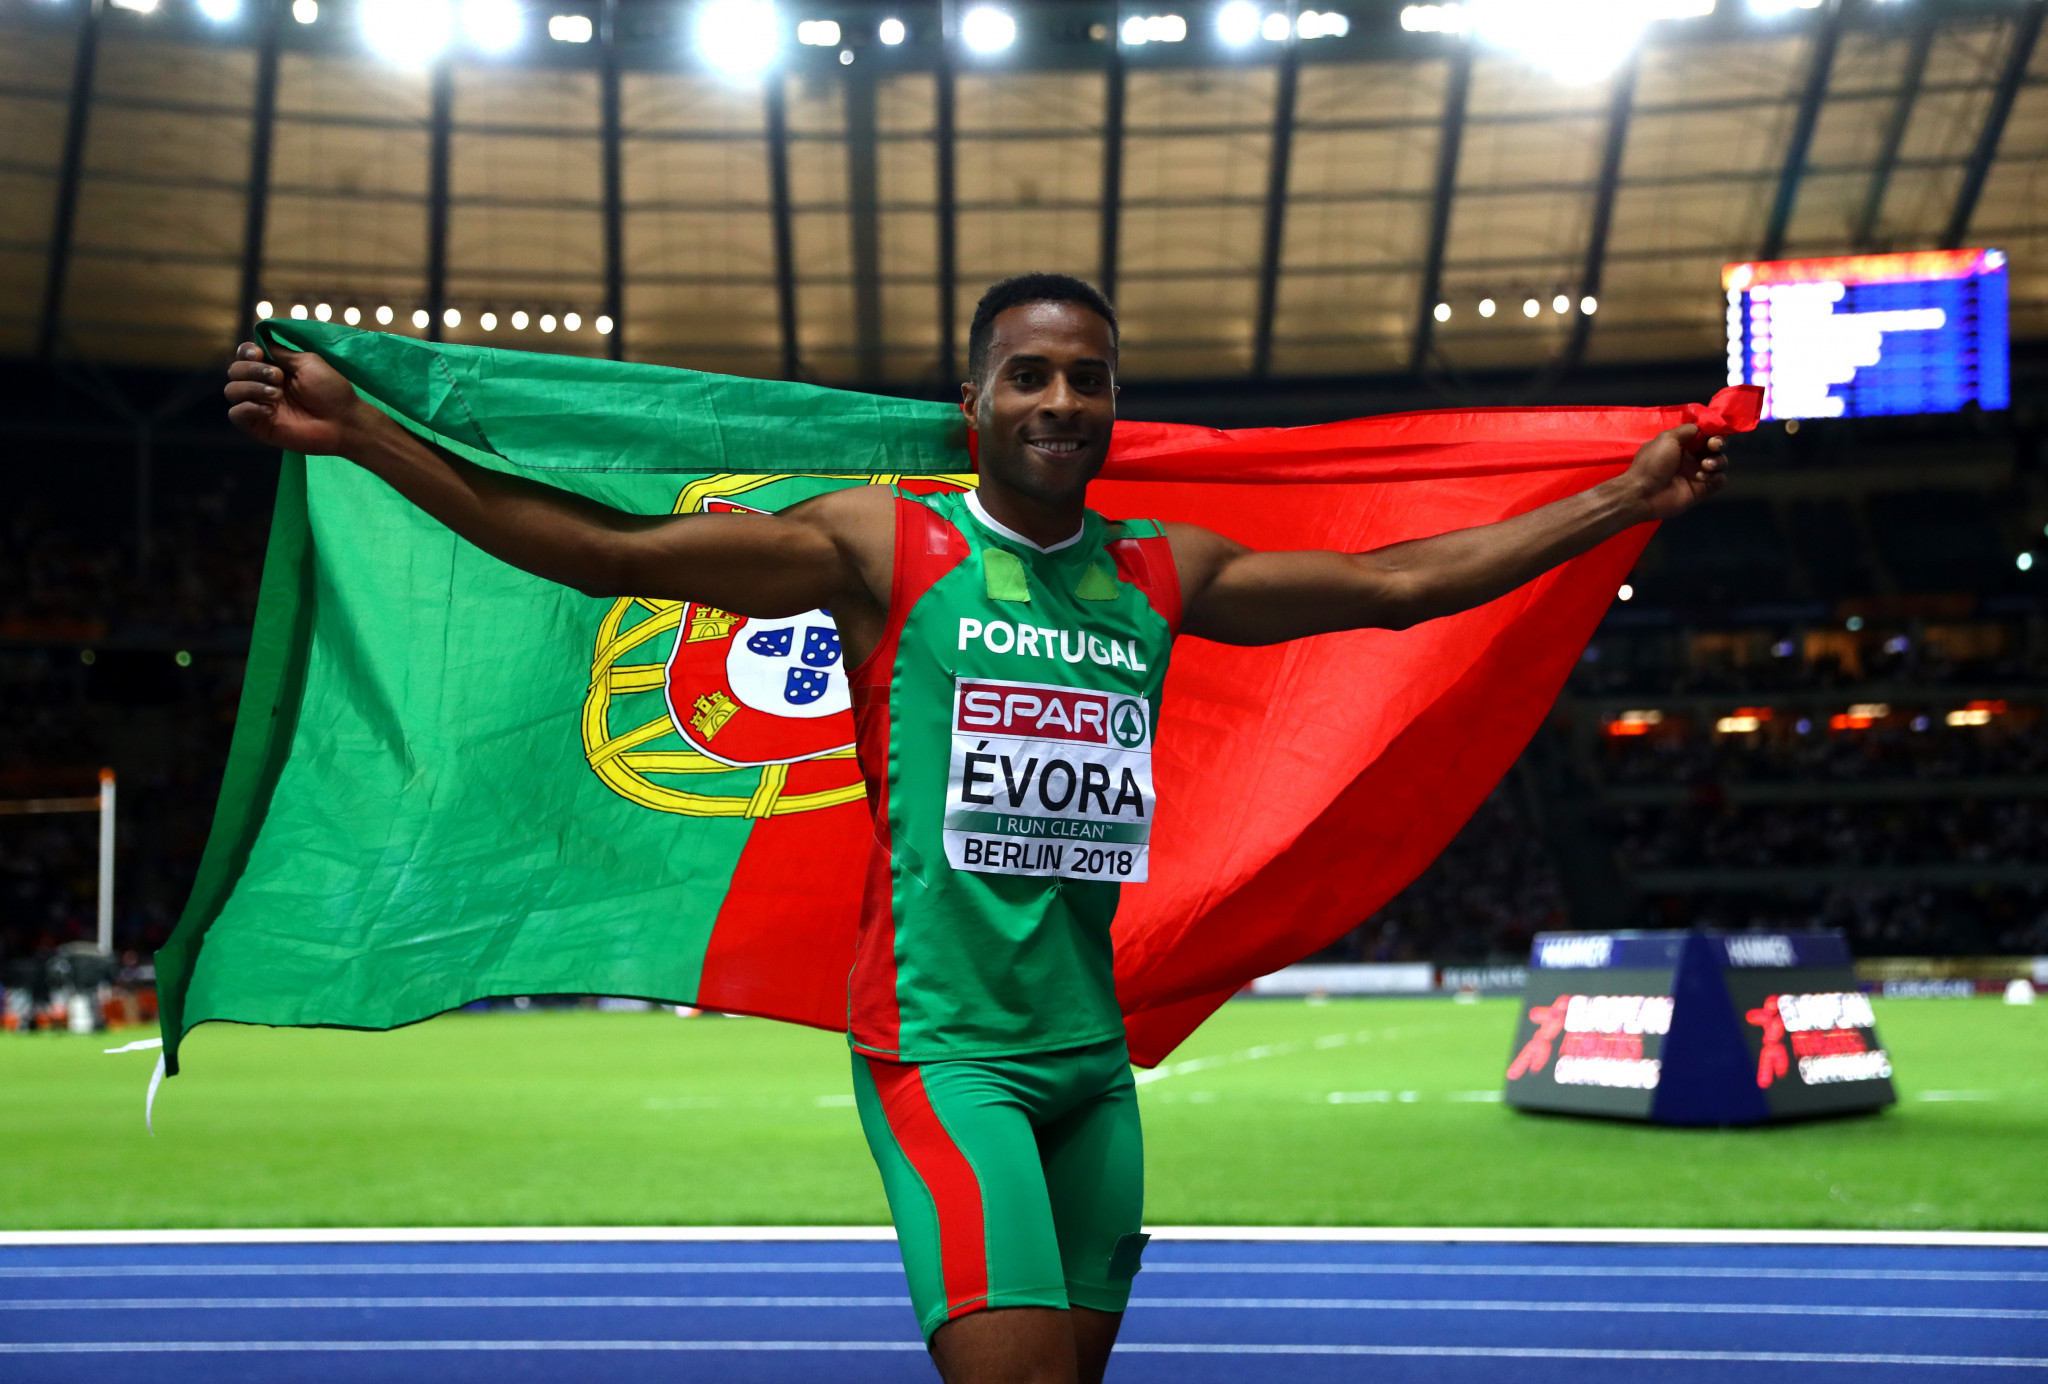 Nelson Évora has won two Universiade gold medals ©Getty Images